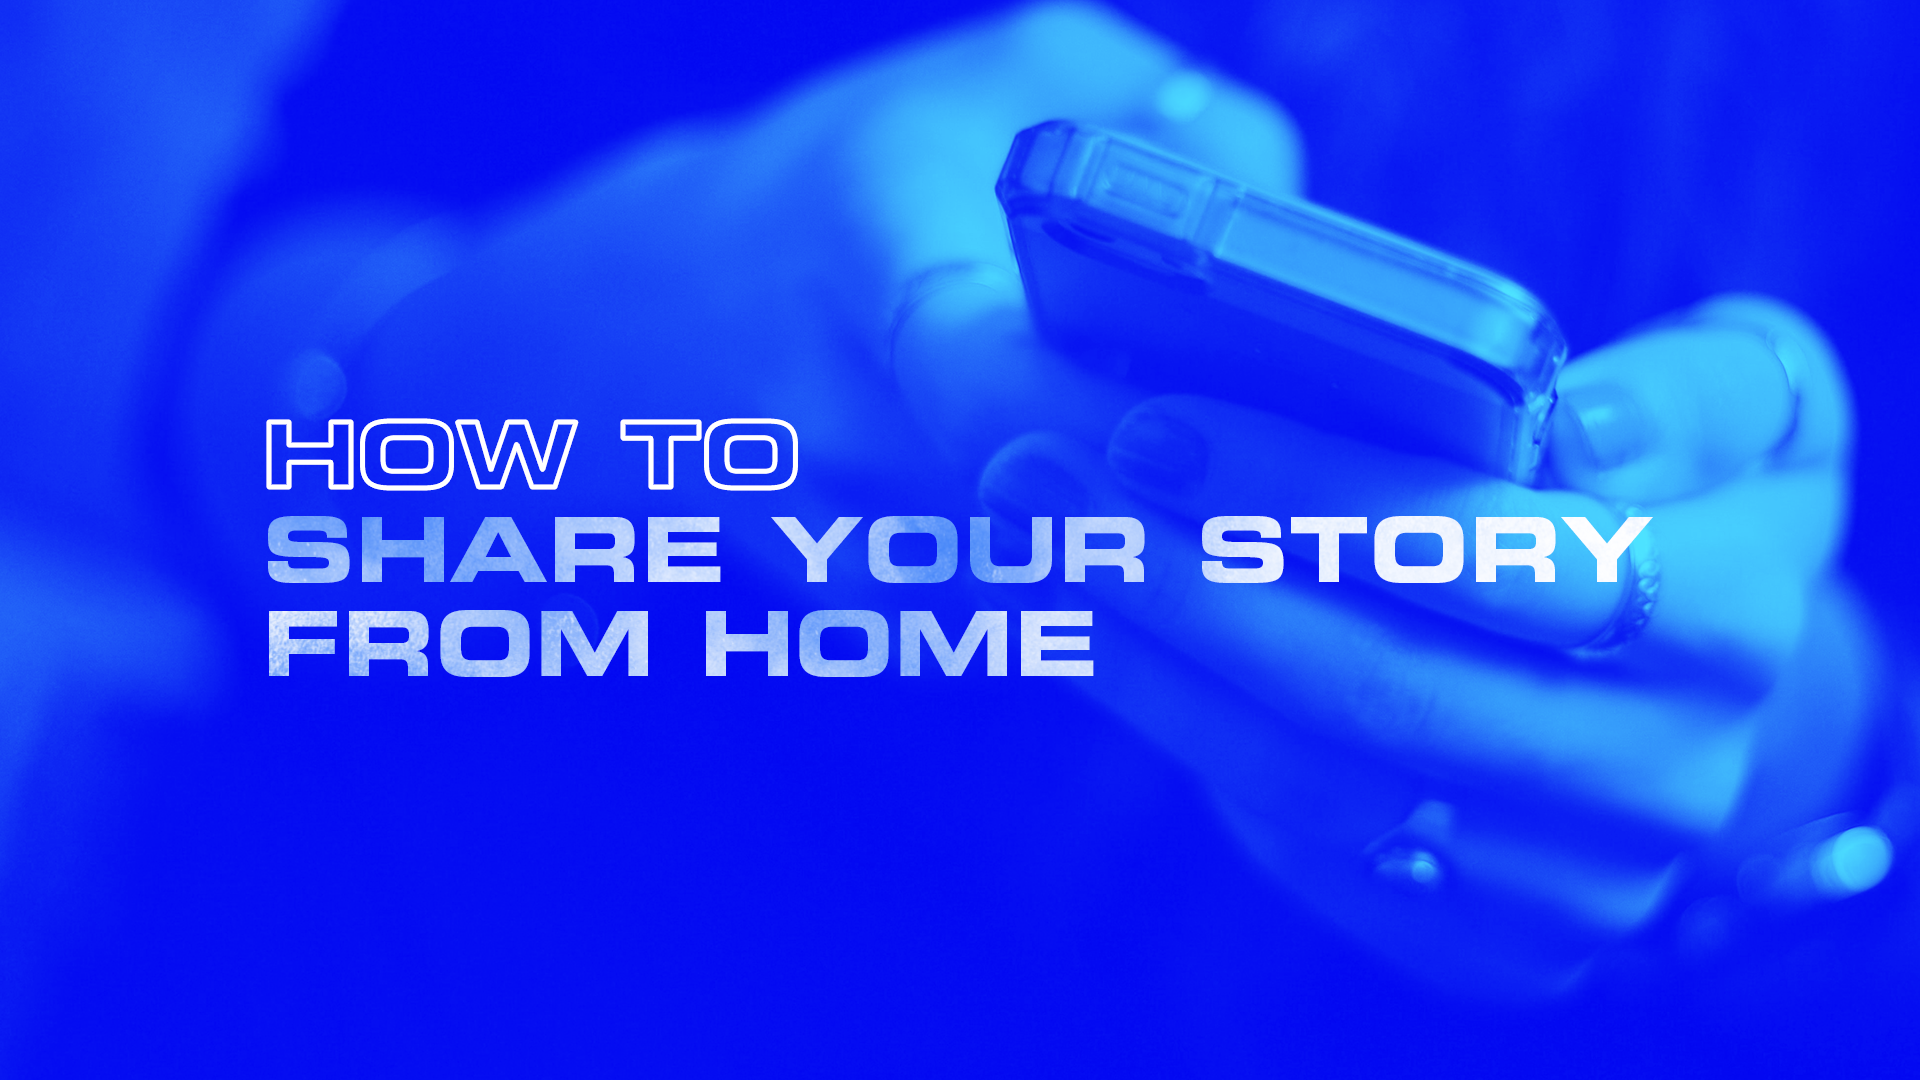 How To Share Your Story From Home